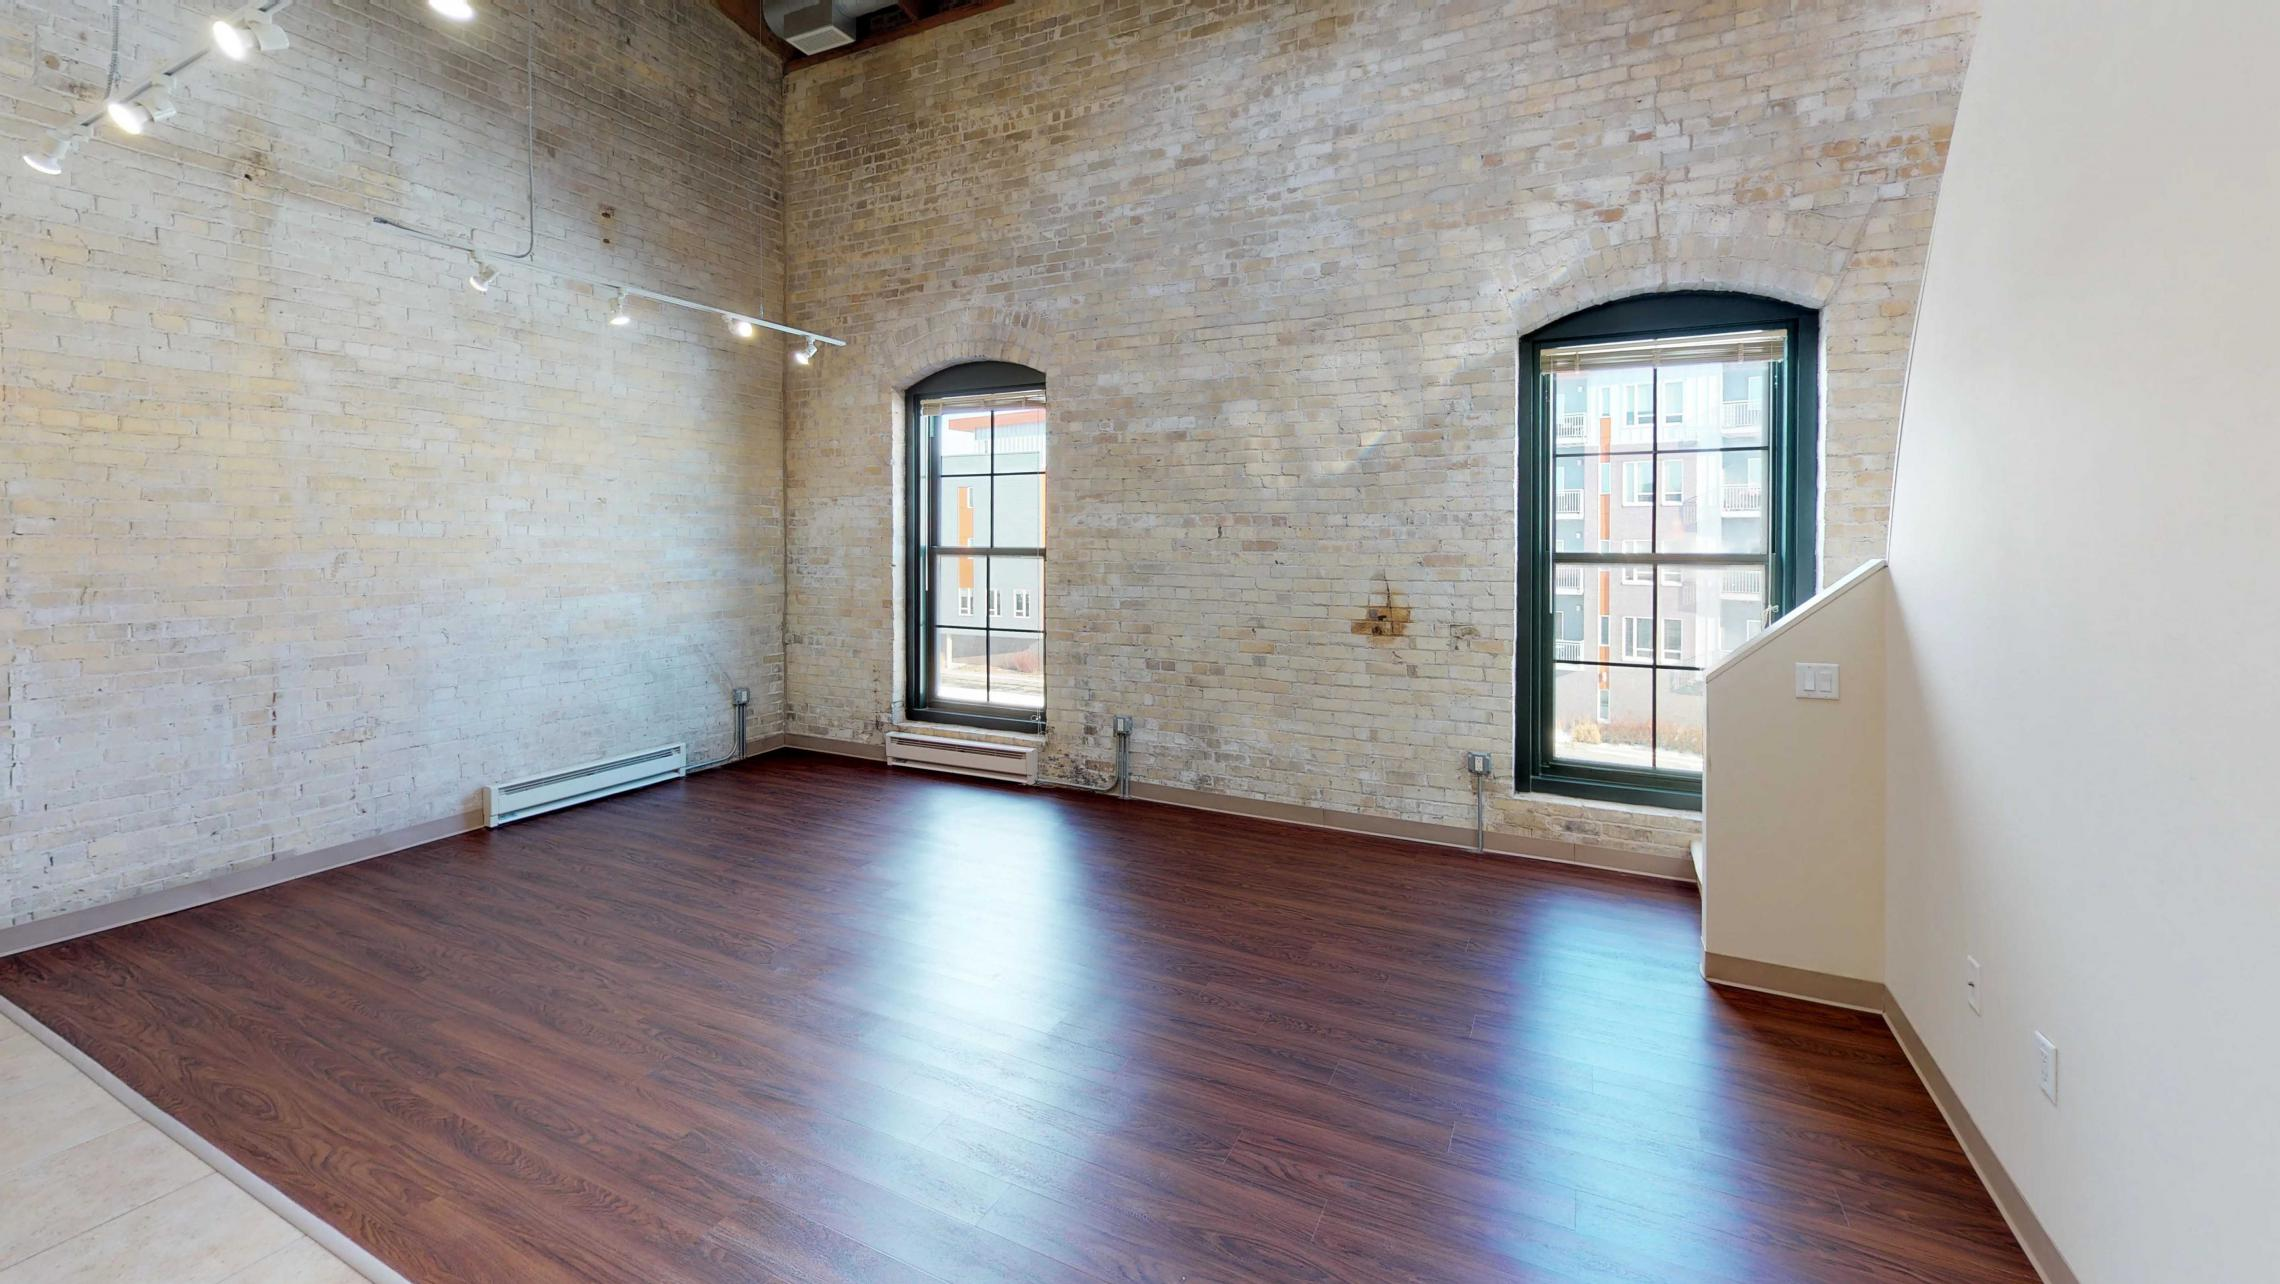 E307-Historic-Downtown-Lofted-Two-Bedroom-Madison-Exposed-Brick-Design-Beams-Dining-Tobacco-Lofts